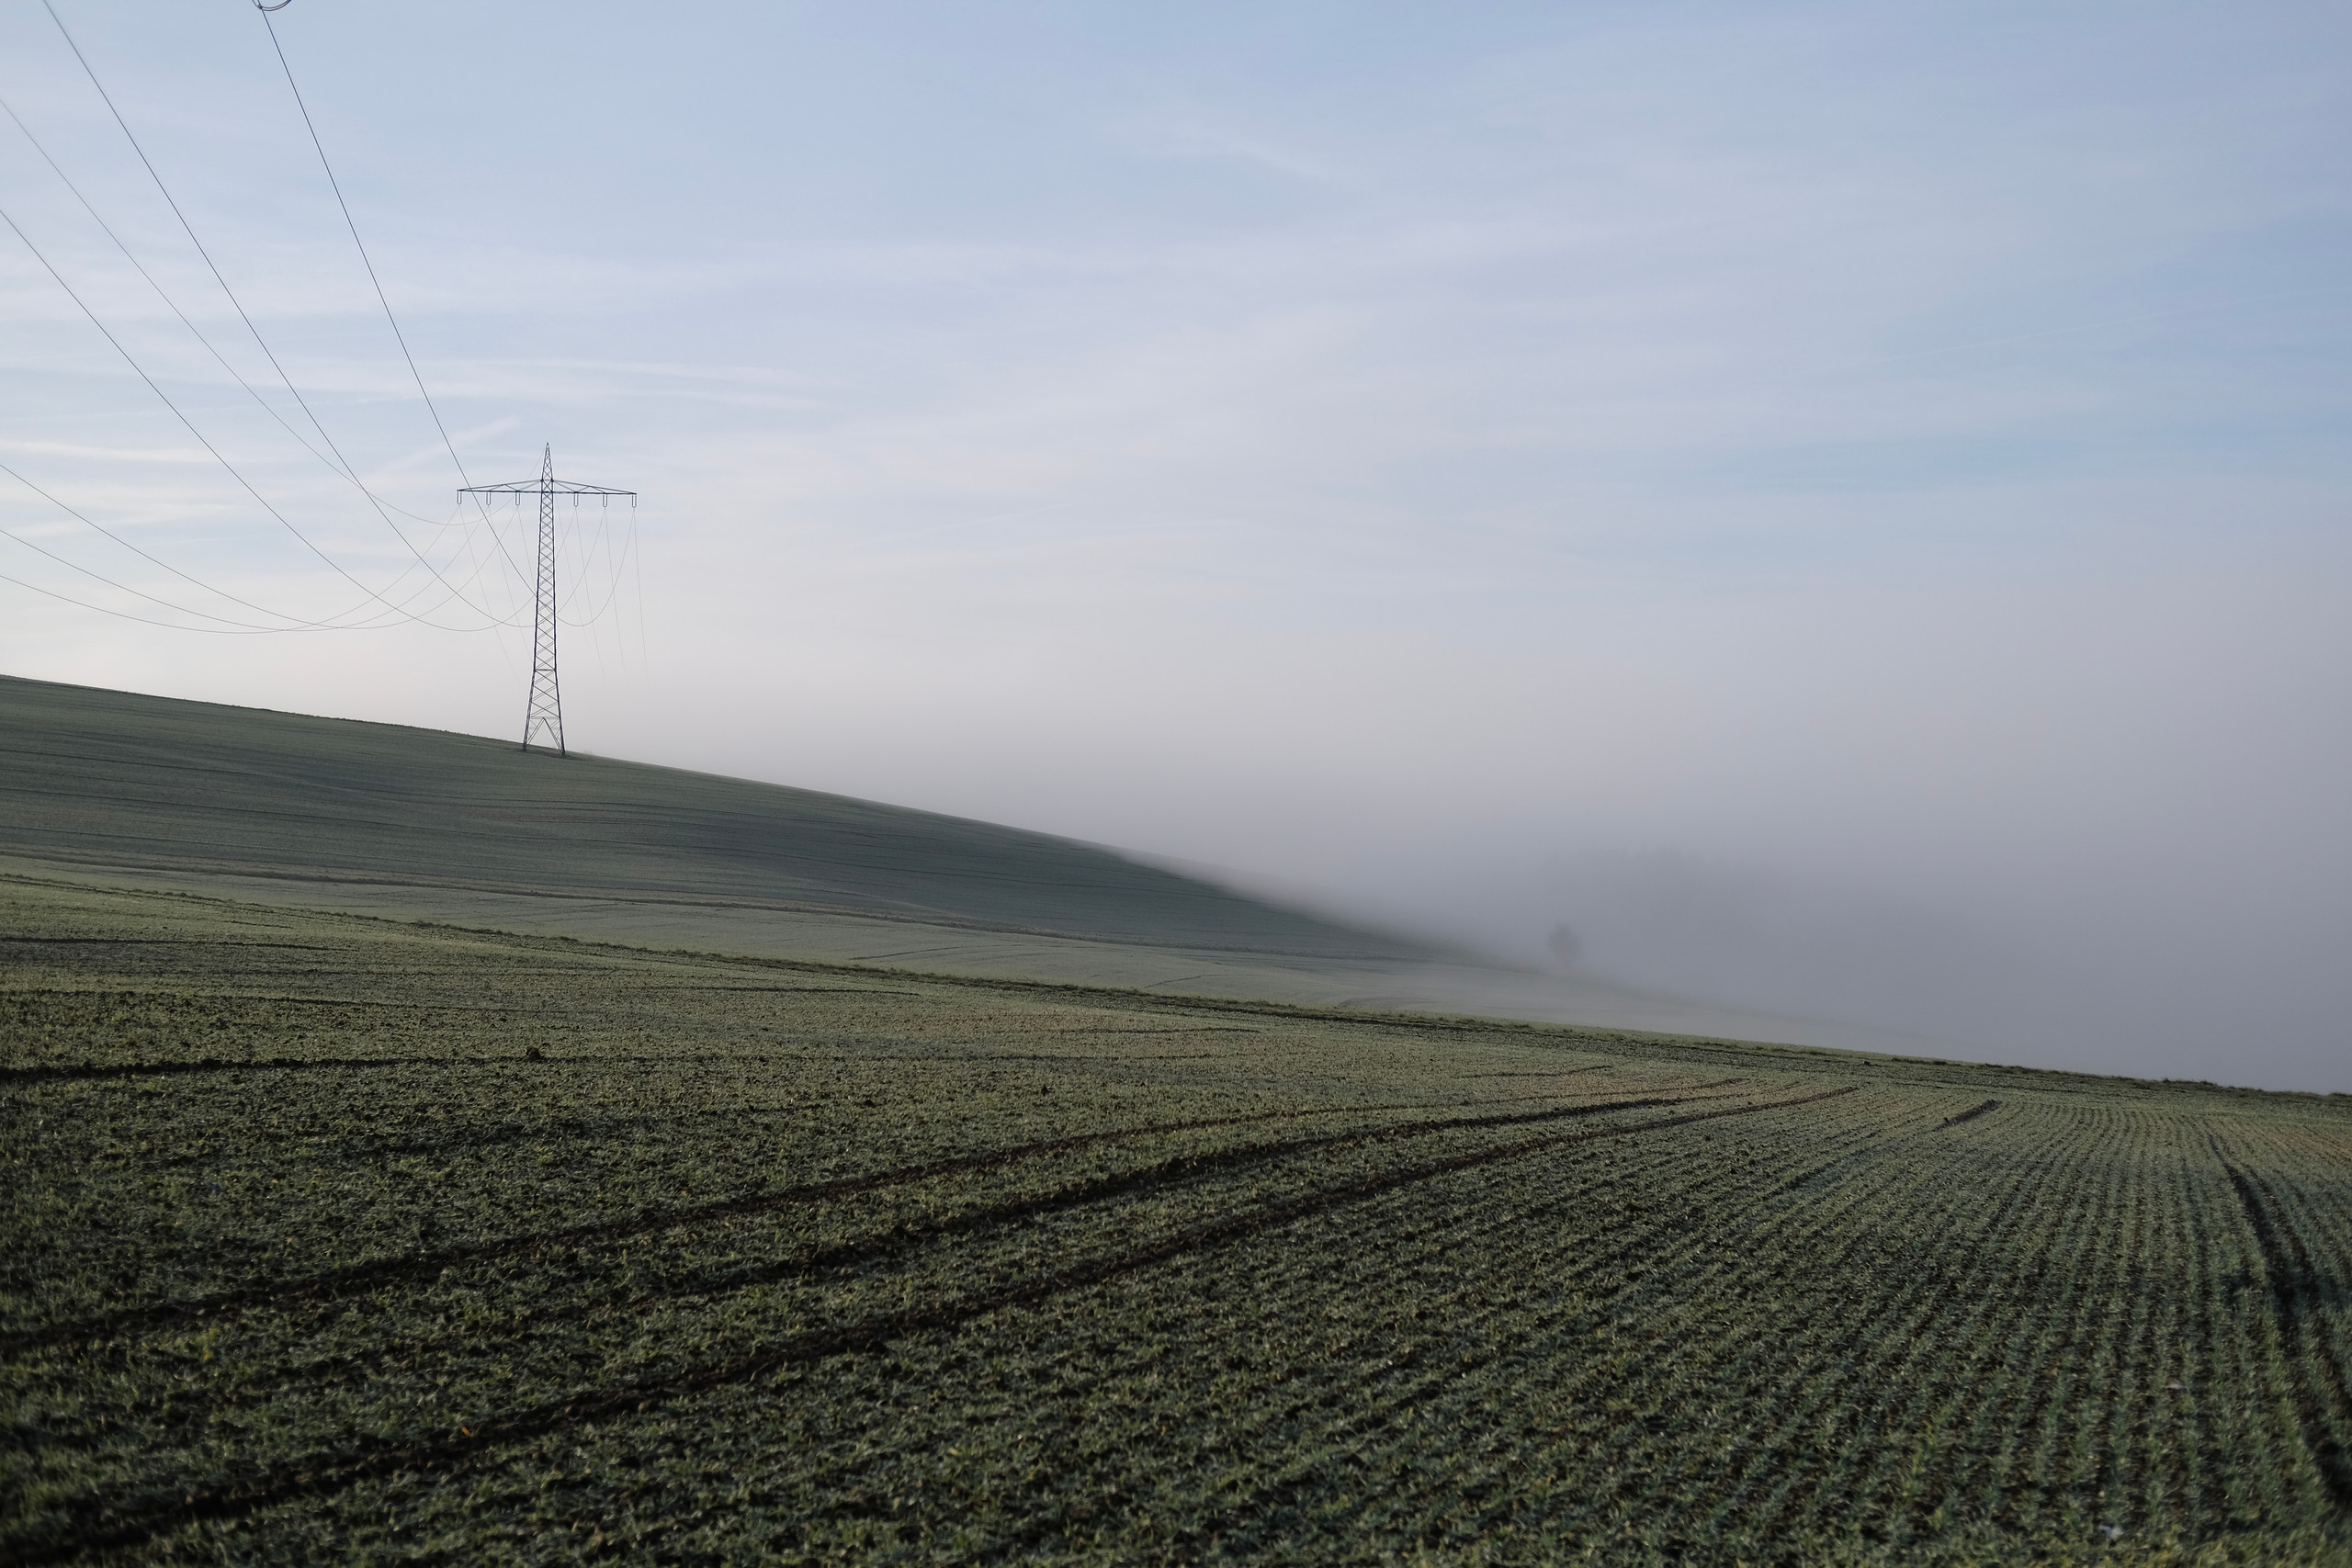 A downward sloping field swallowed by fog in the distance, a high-voltage transmission line on the left